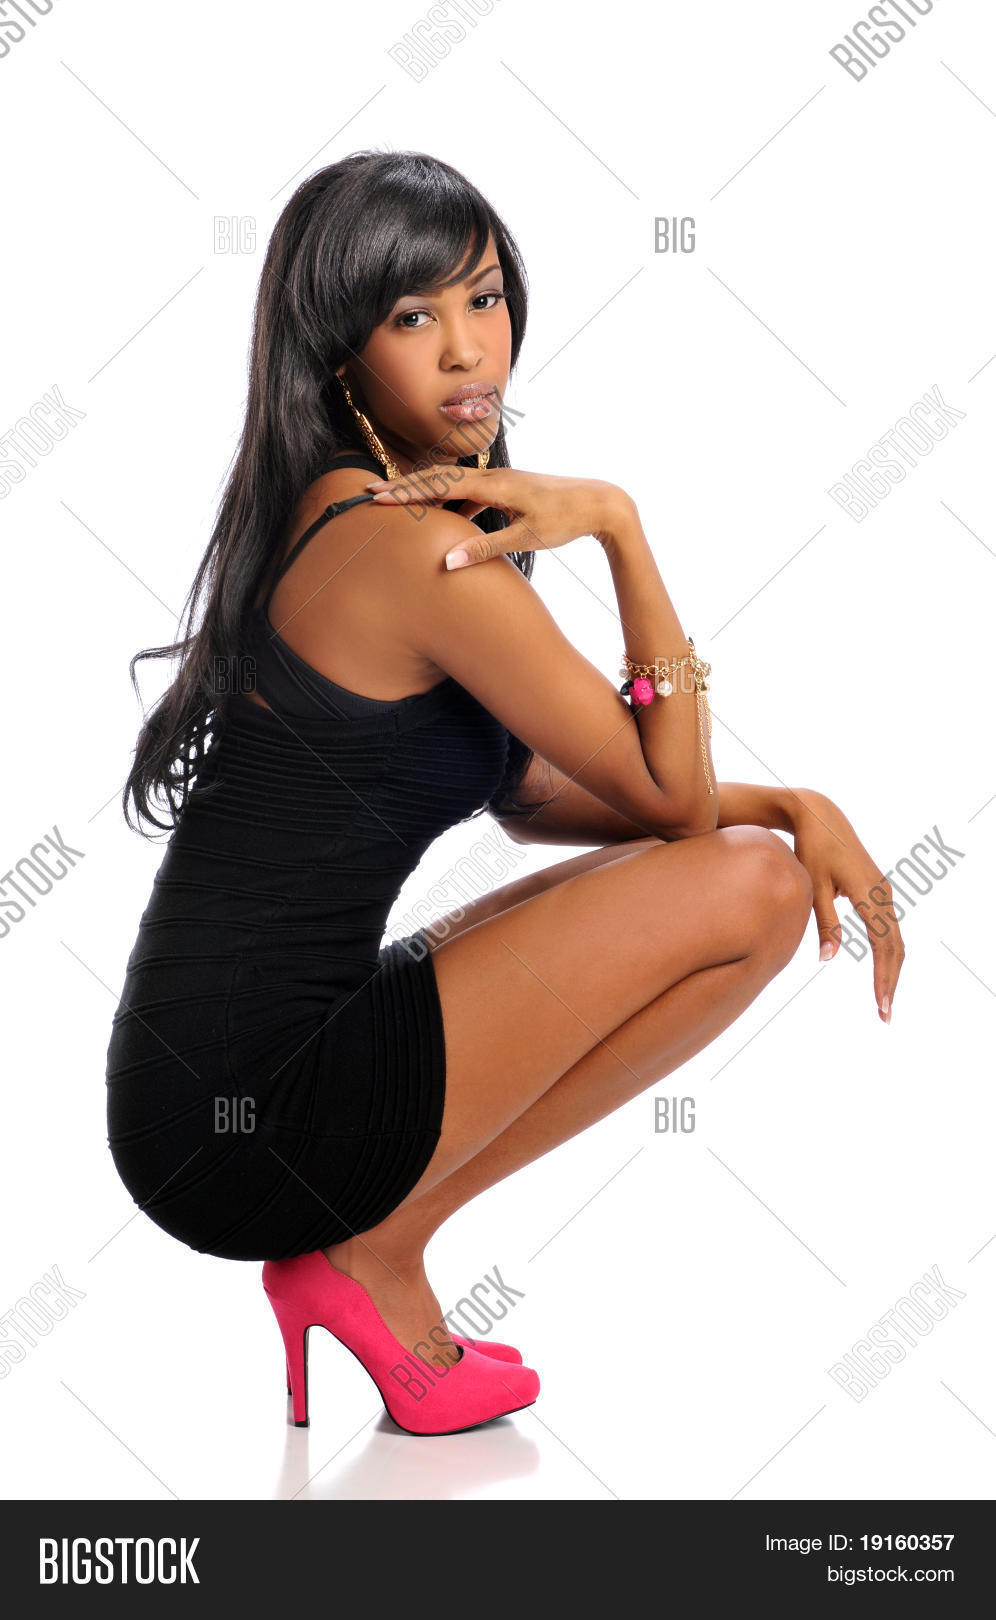 91590a5e91bc6 African American woman posing wearing a black dress and high heels